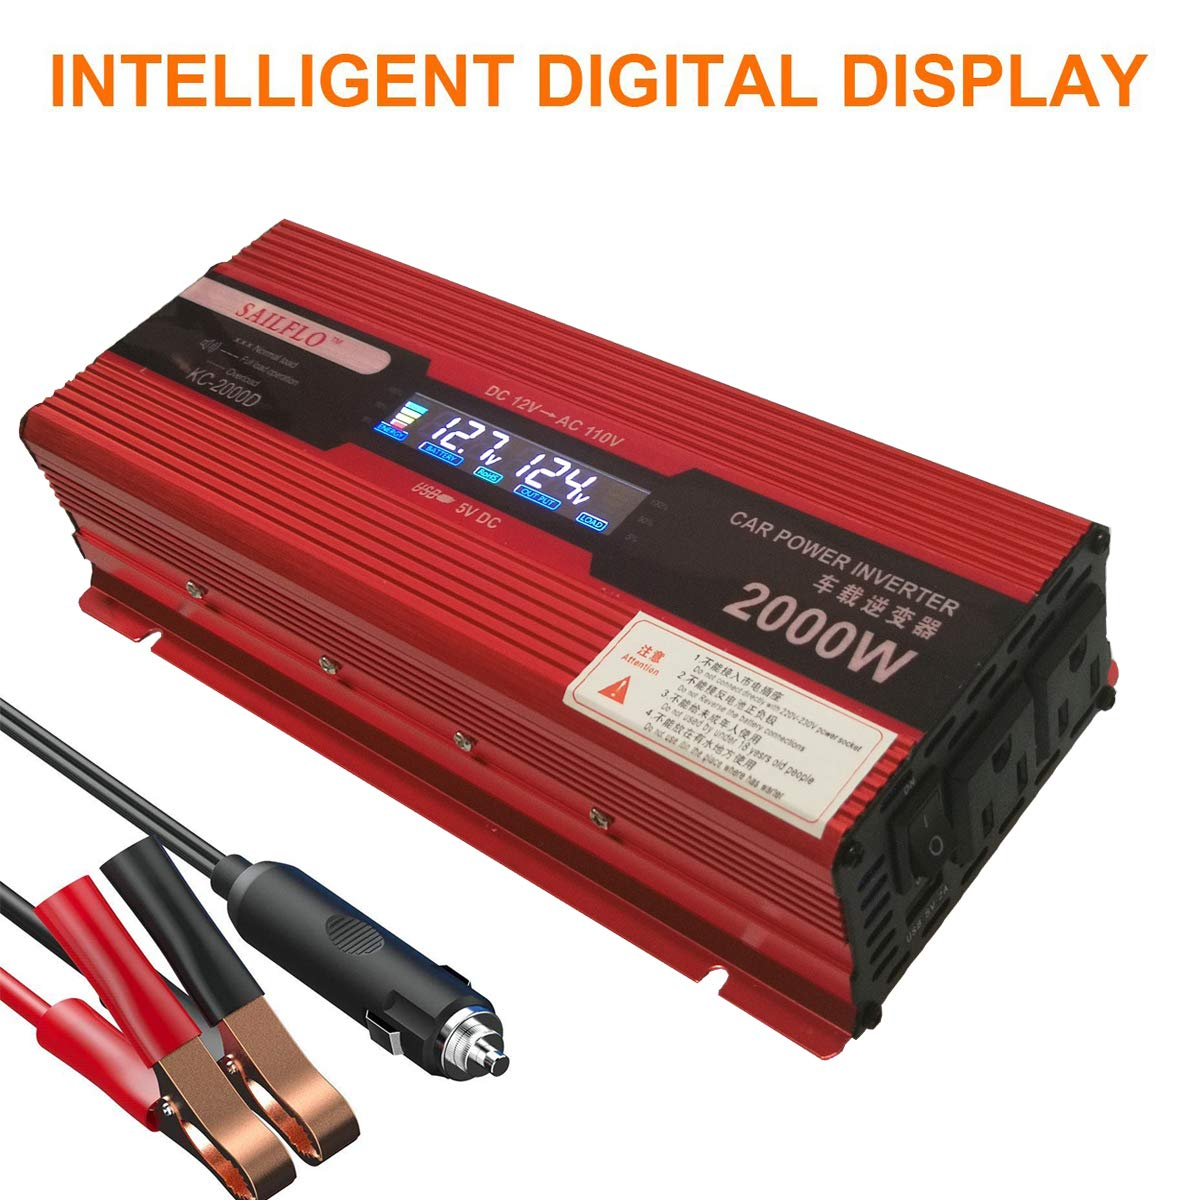 2000w 1000 Watts Continuous Power Inverter For Home How Does An Work In Rv Car With 2 Ac Outlets Converter 12v Dc To 110v Cigarette Lighter